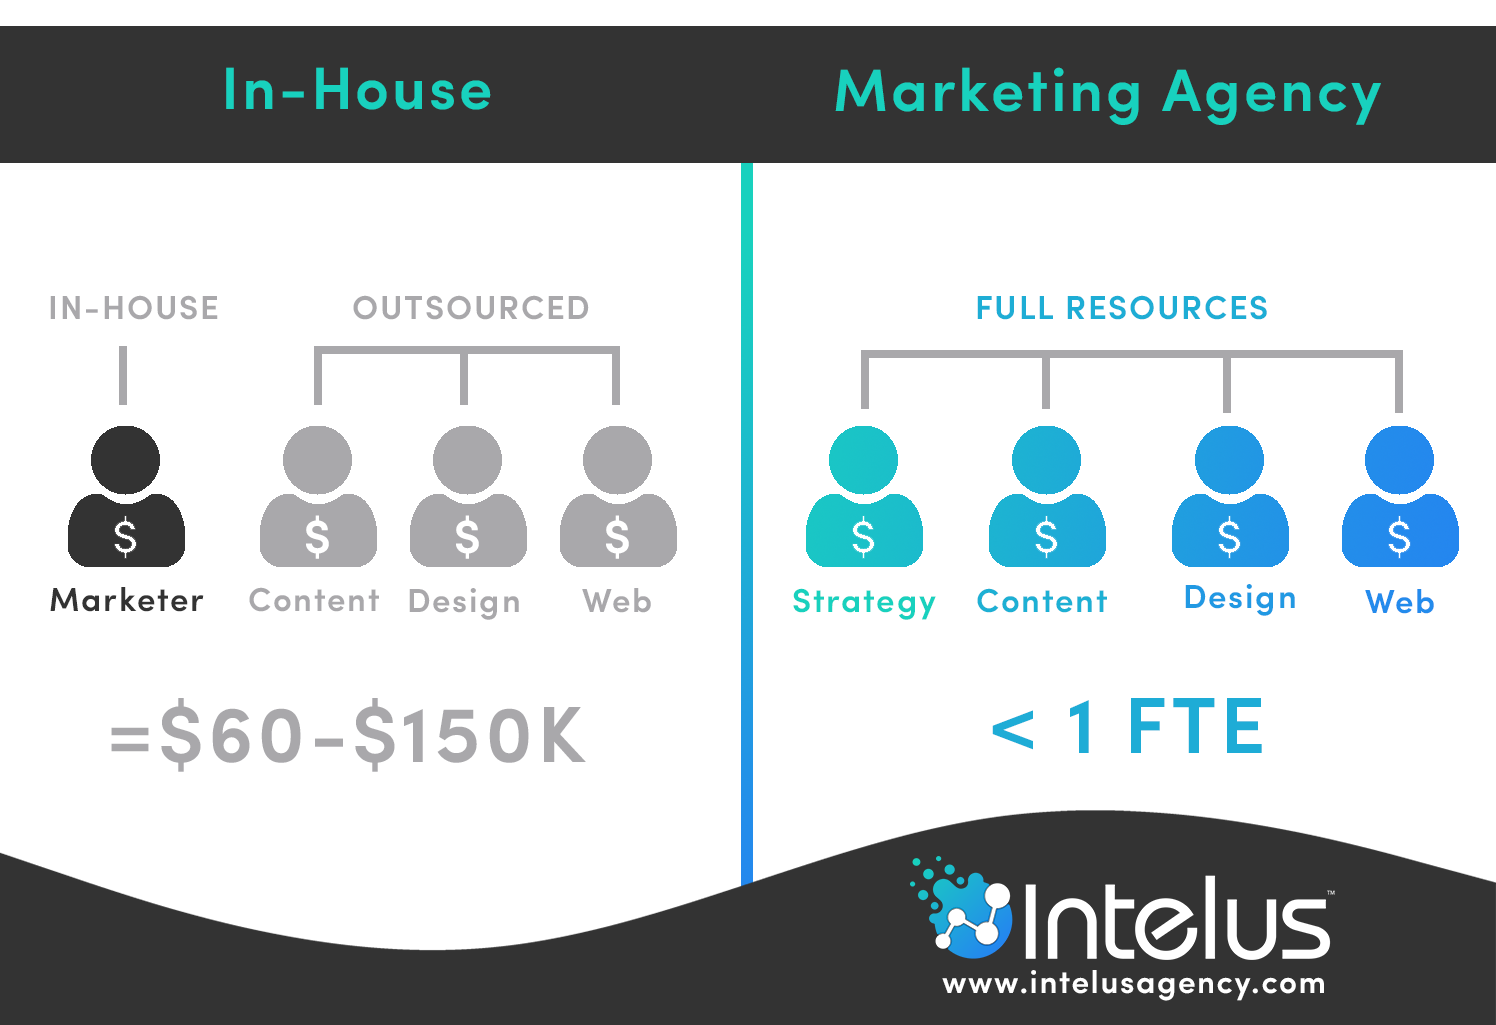 how to decide between in-house and outsourced marketing